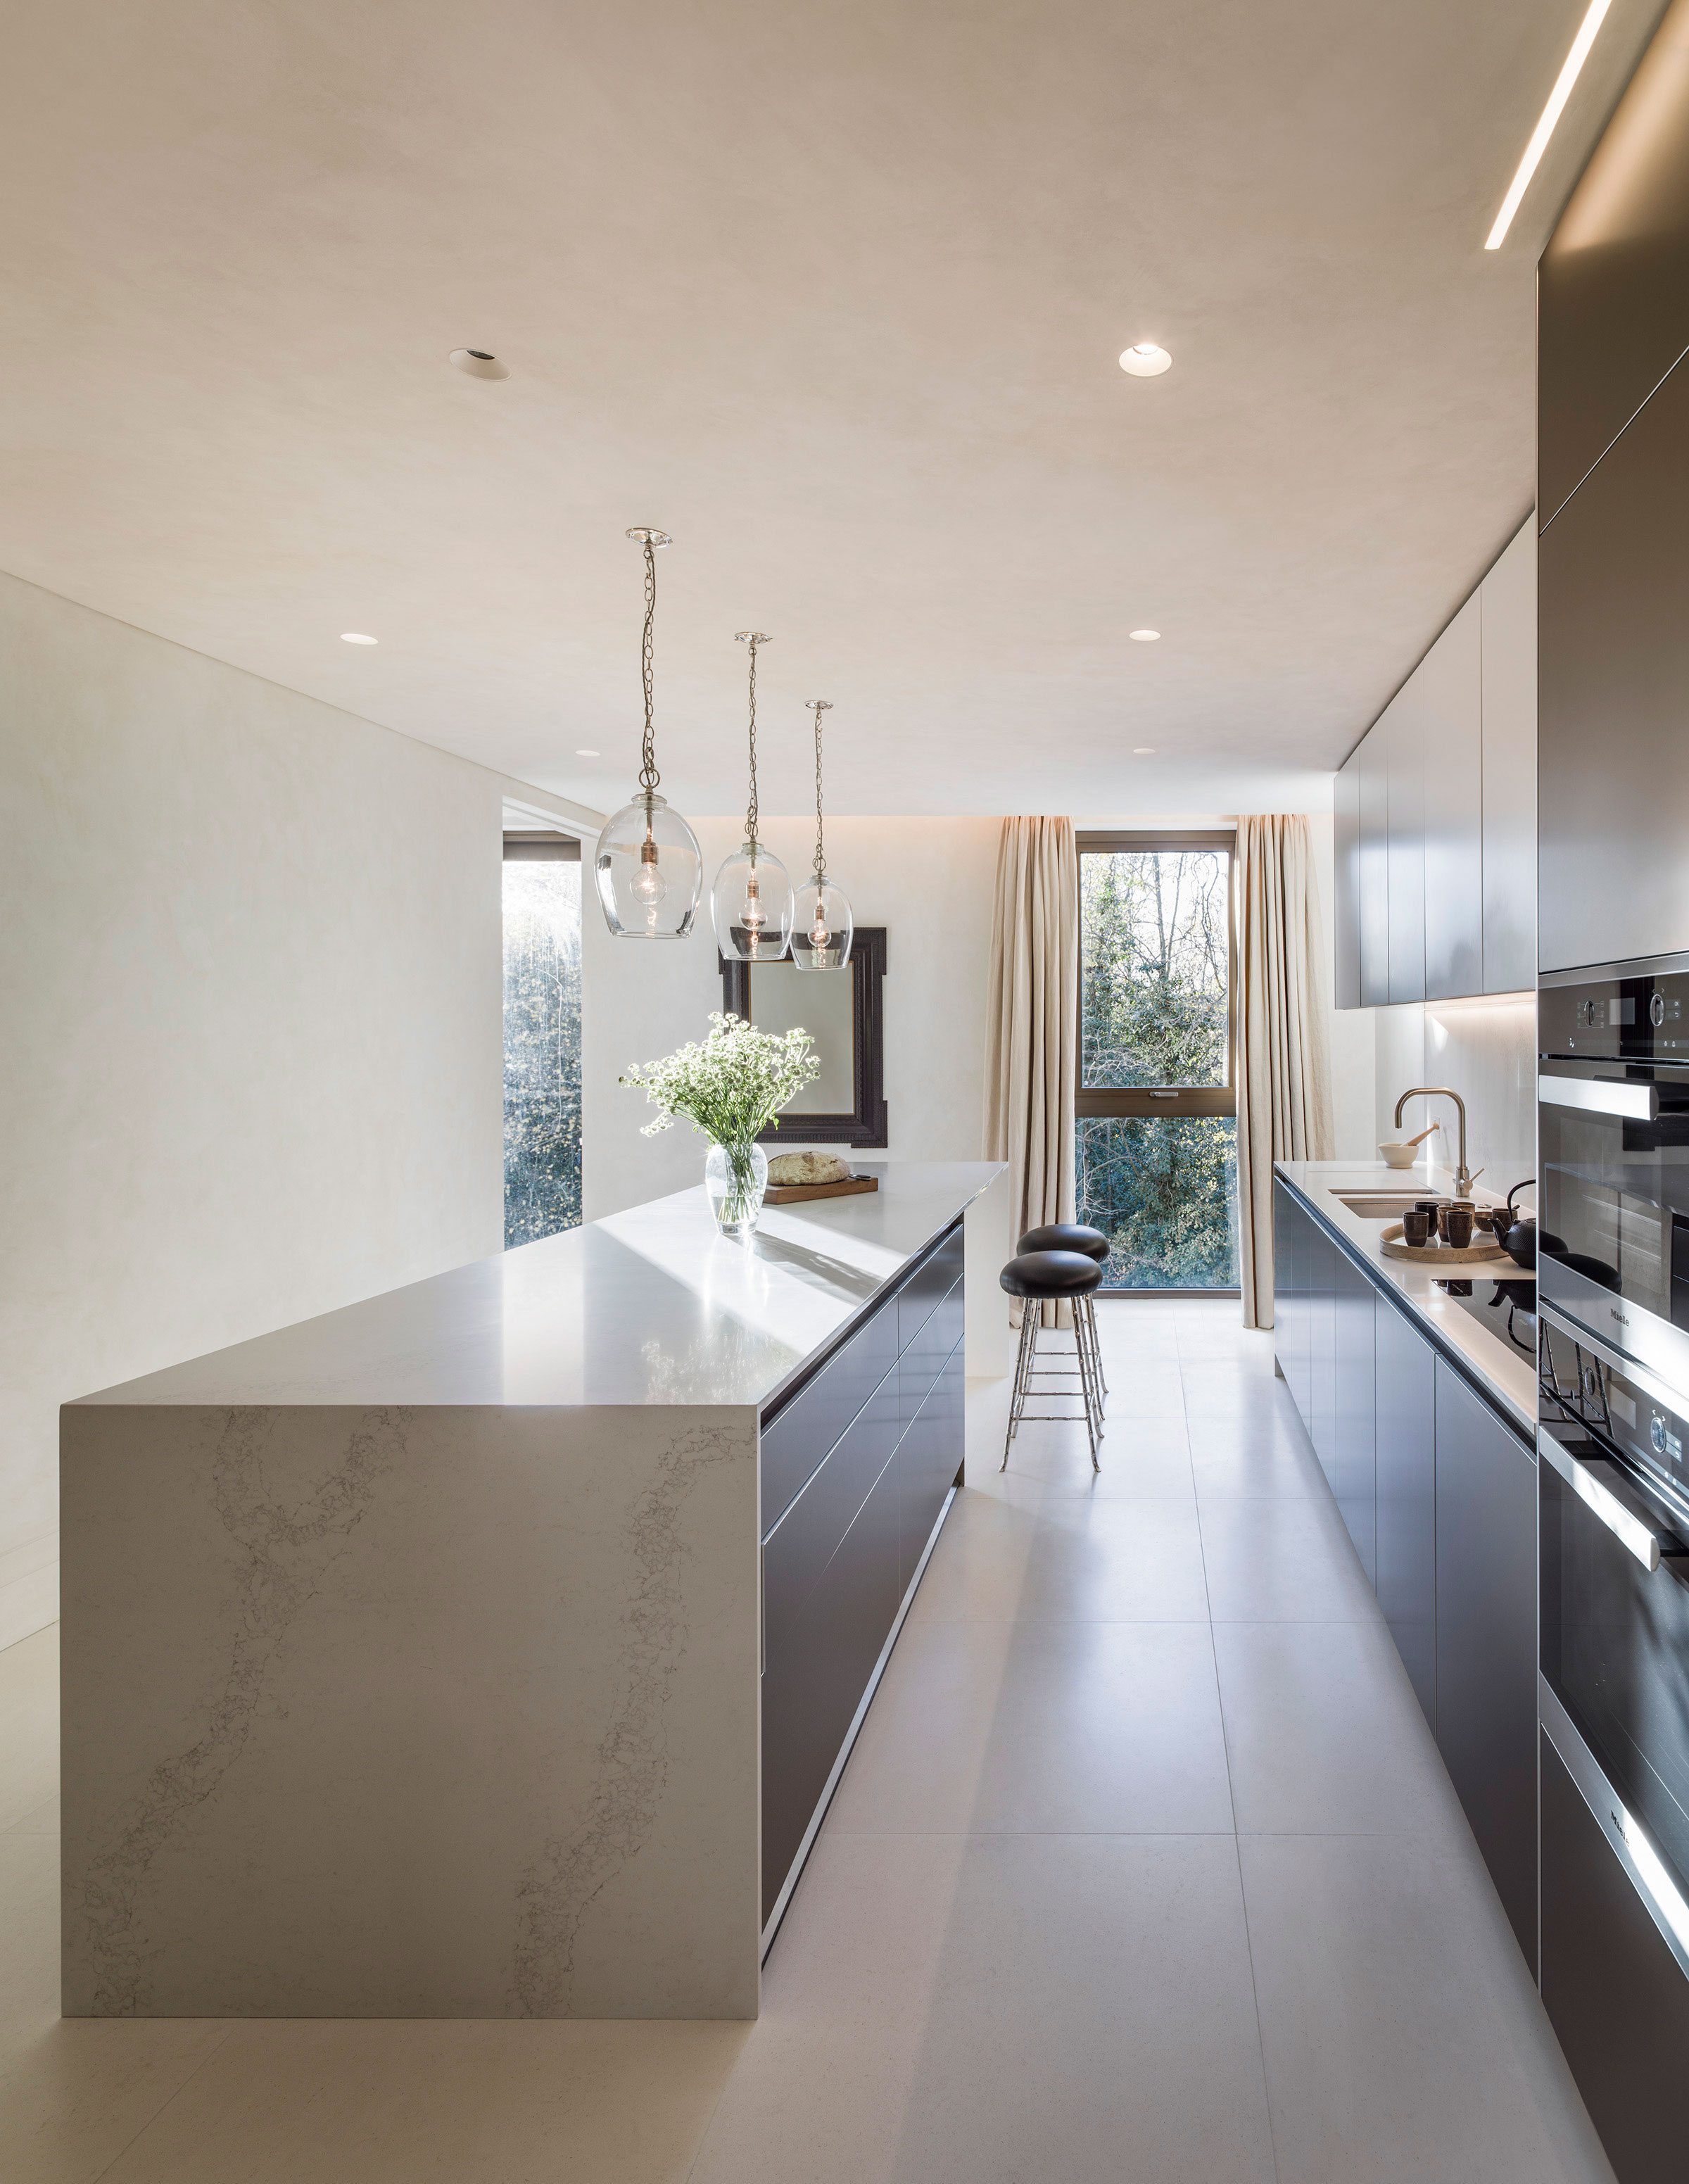 Spacious Bulthaup B3 Fitted Kitchen With Island Overlooking Holland Park.